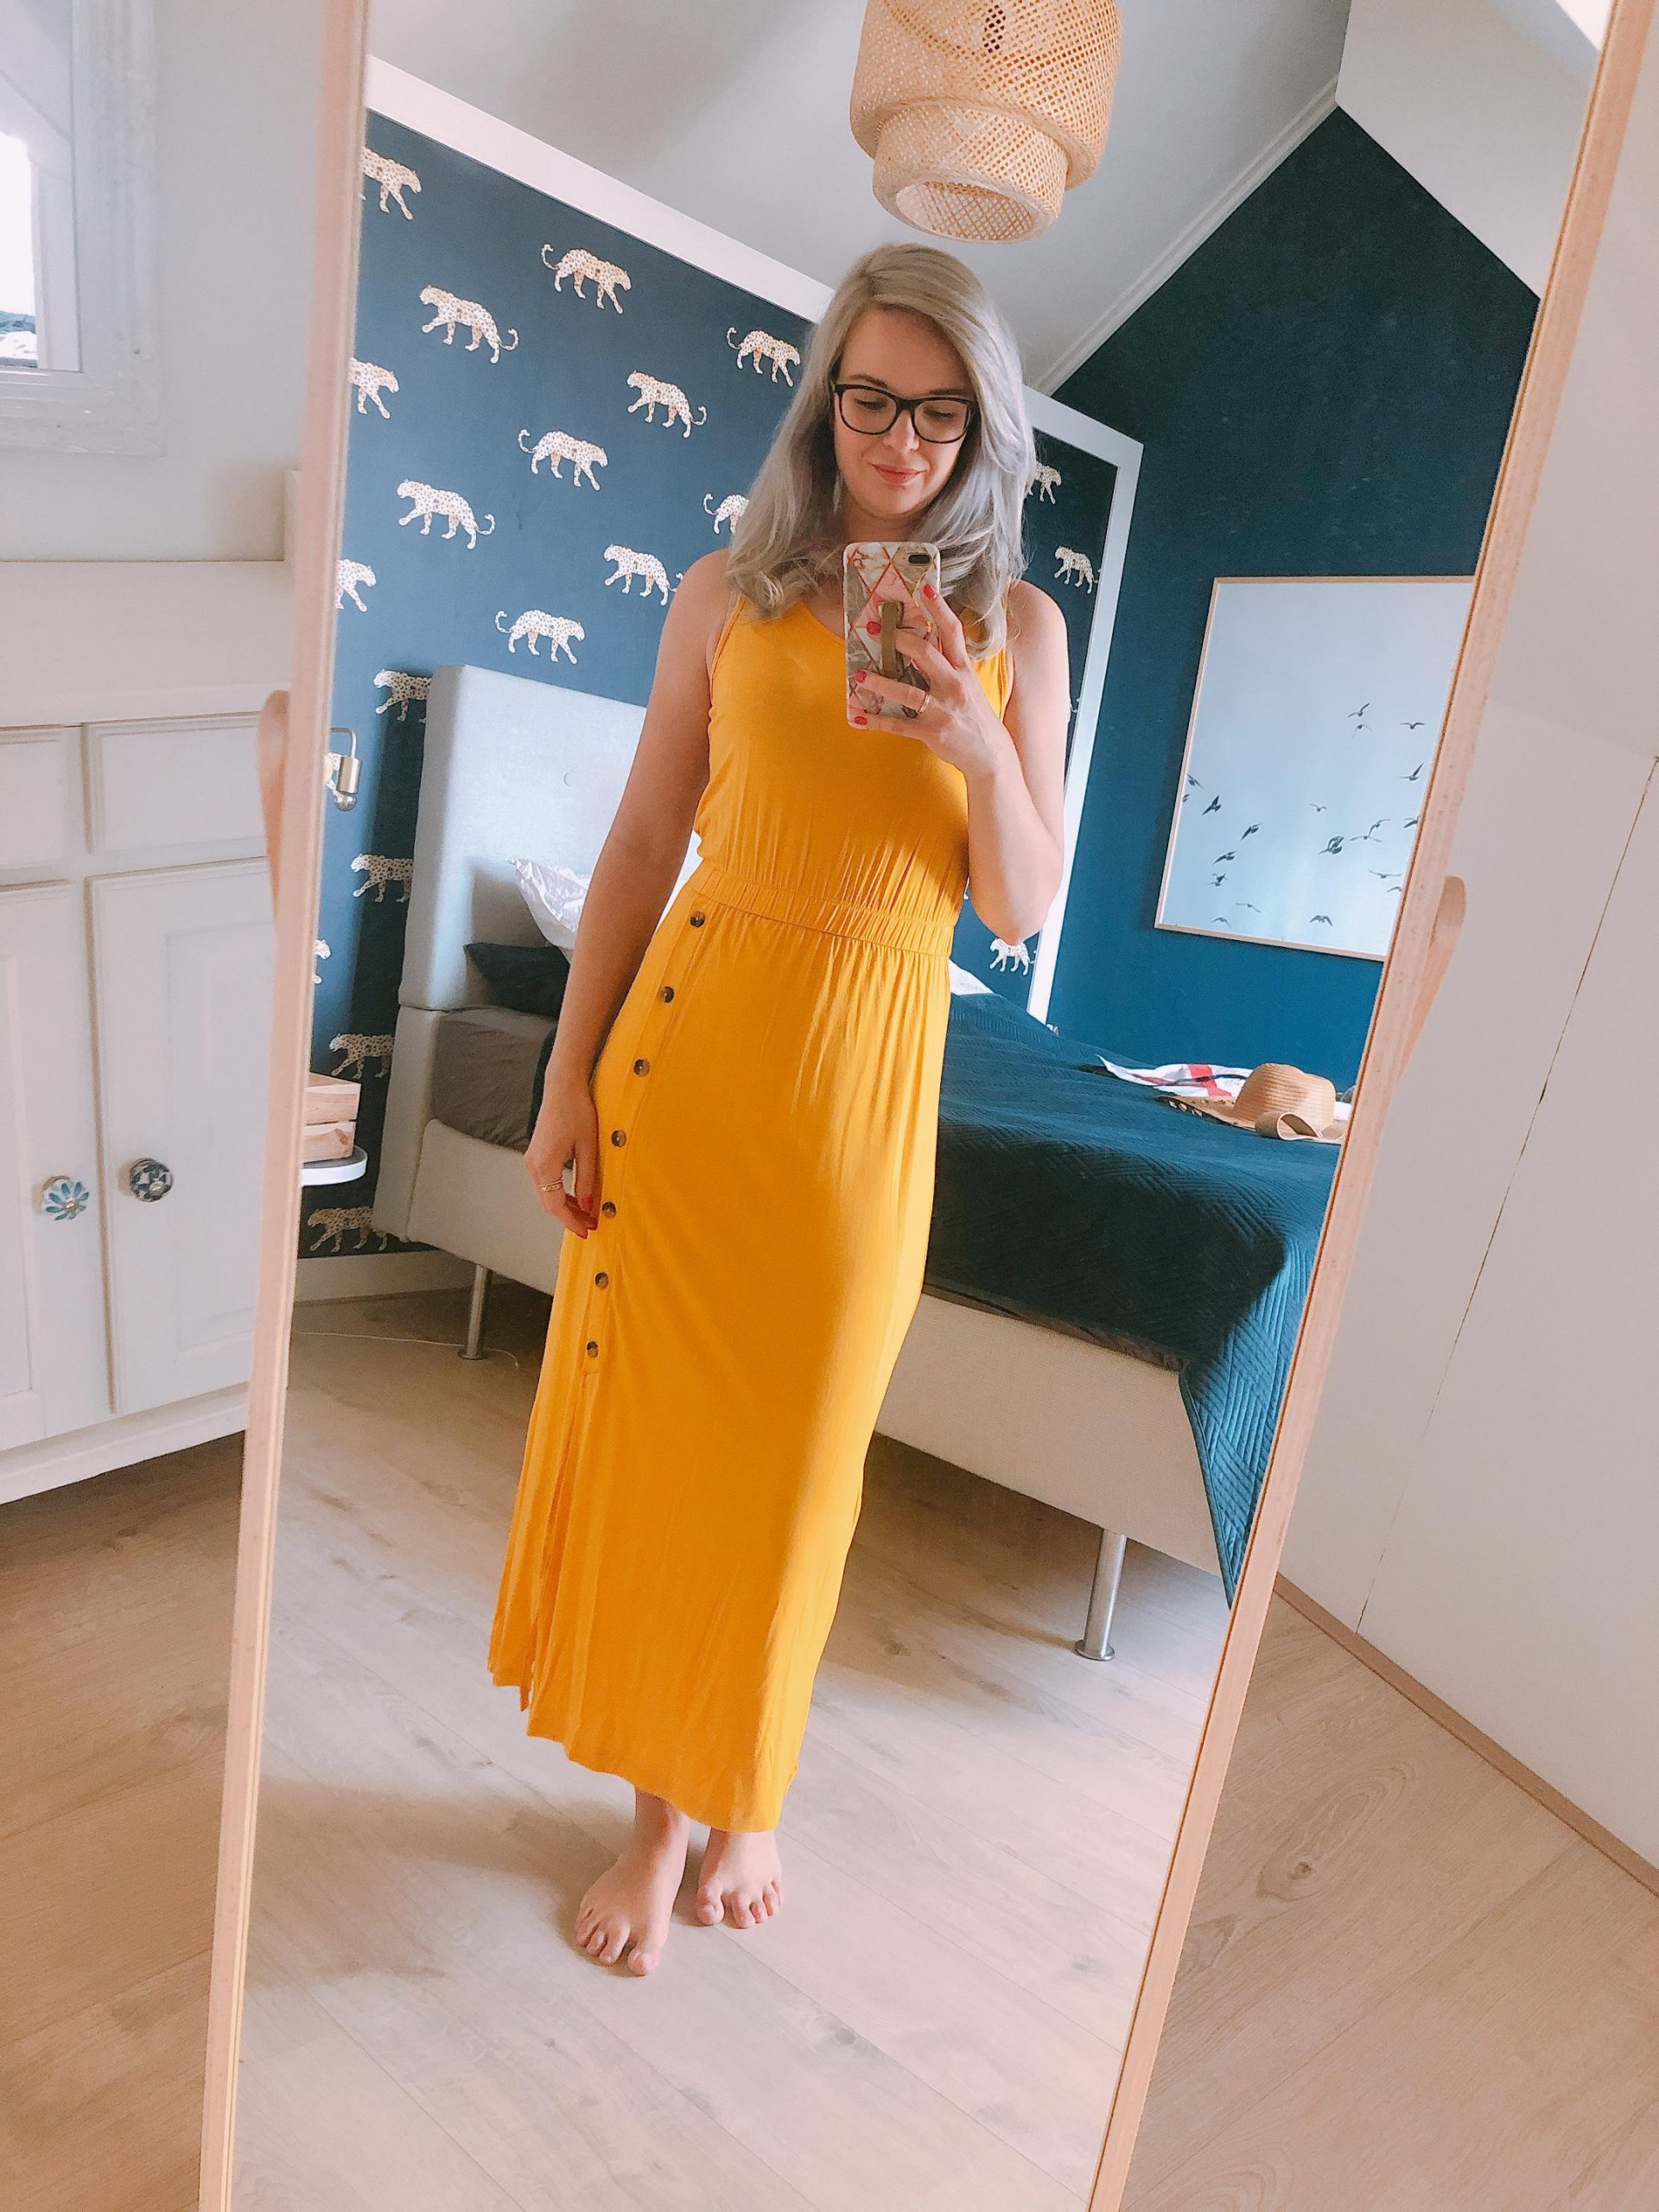 IMG 9640 2160x2880 1 scaled - 3x Zomerse Bohemien Outfits (Shoplog)!